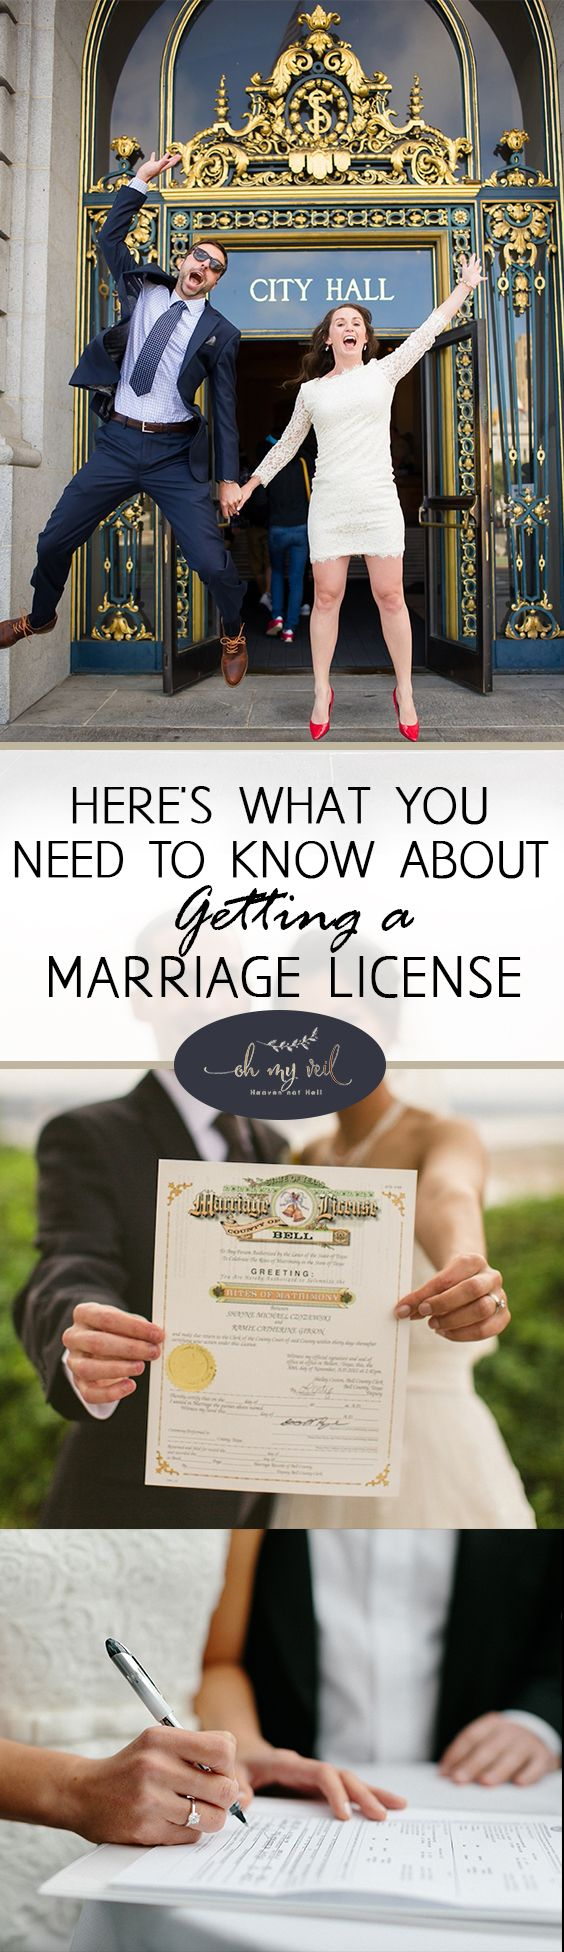 Here's What You Need to Know About Getting a Marriage License| Marriage License, Marriage License Tips, How to Get a Marriage License, Marriage, Weddings, Dream Weddings, DIY Wedding, Wedding Tips and Tricks